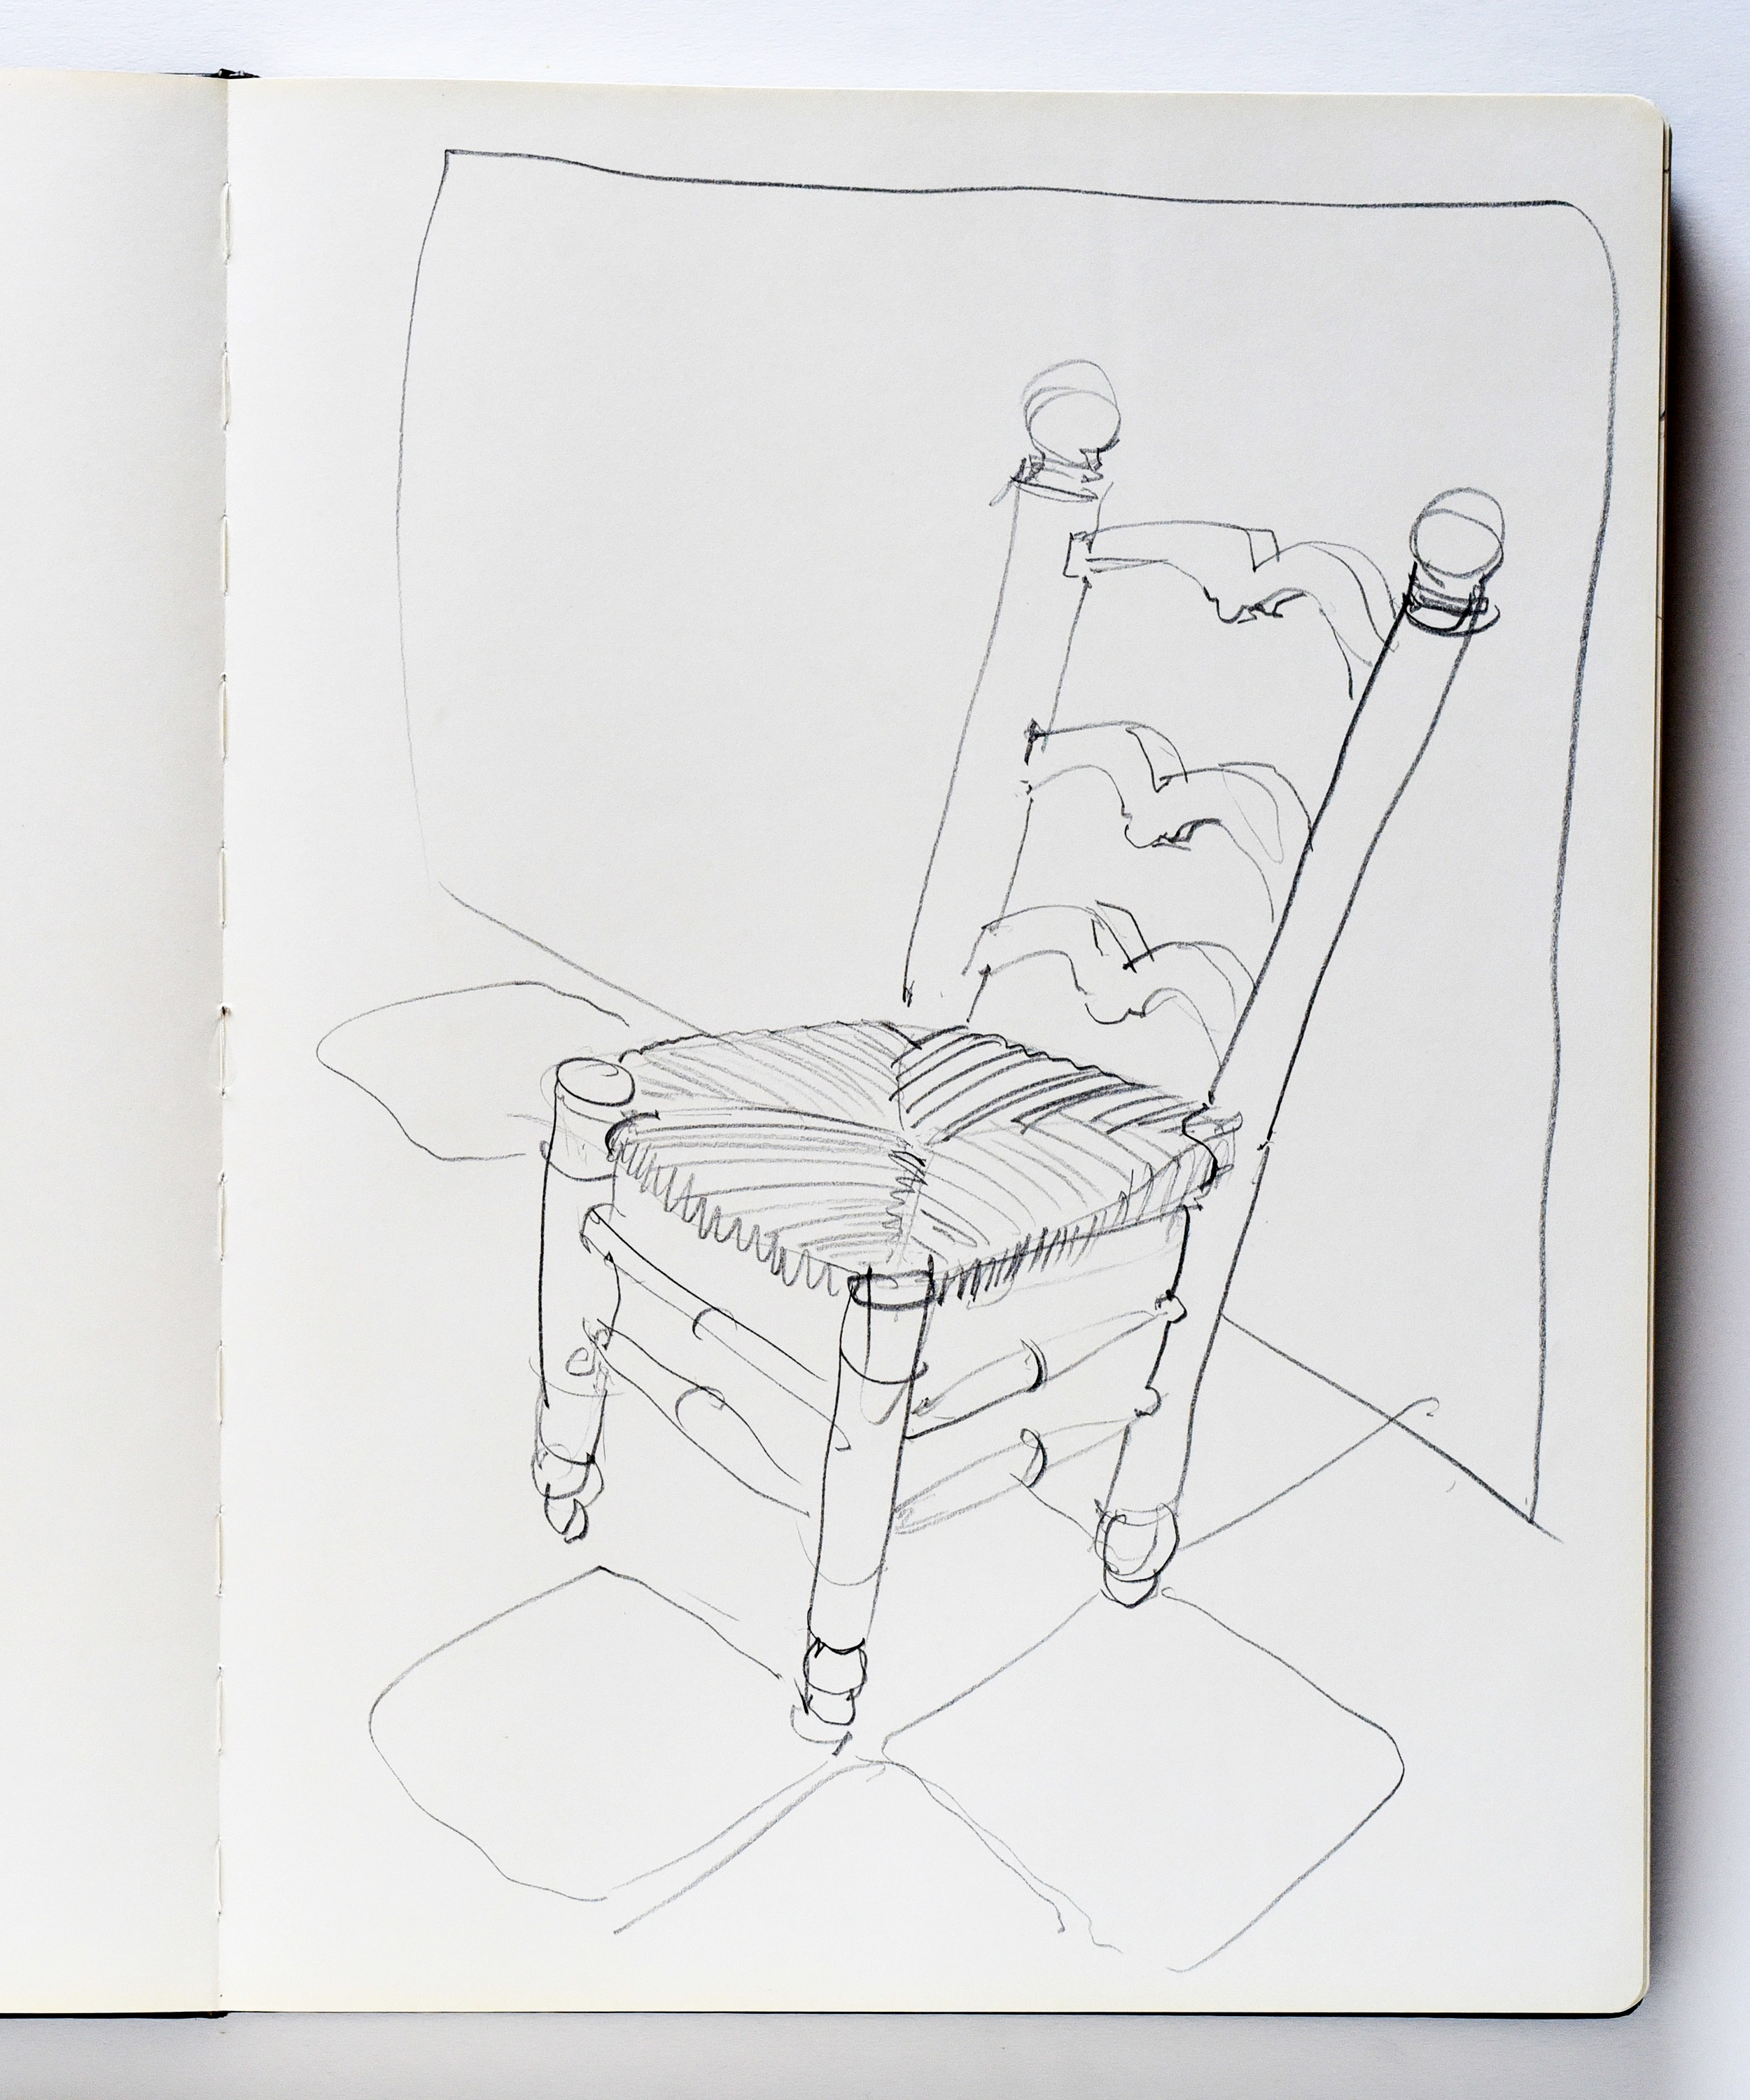 Drawing of a chair in Saint-Rémy-de-Provence France